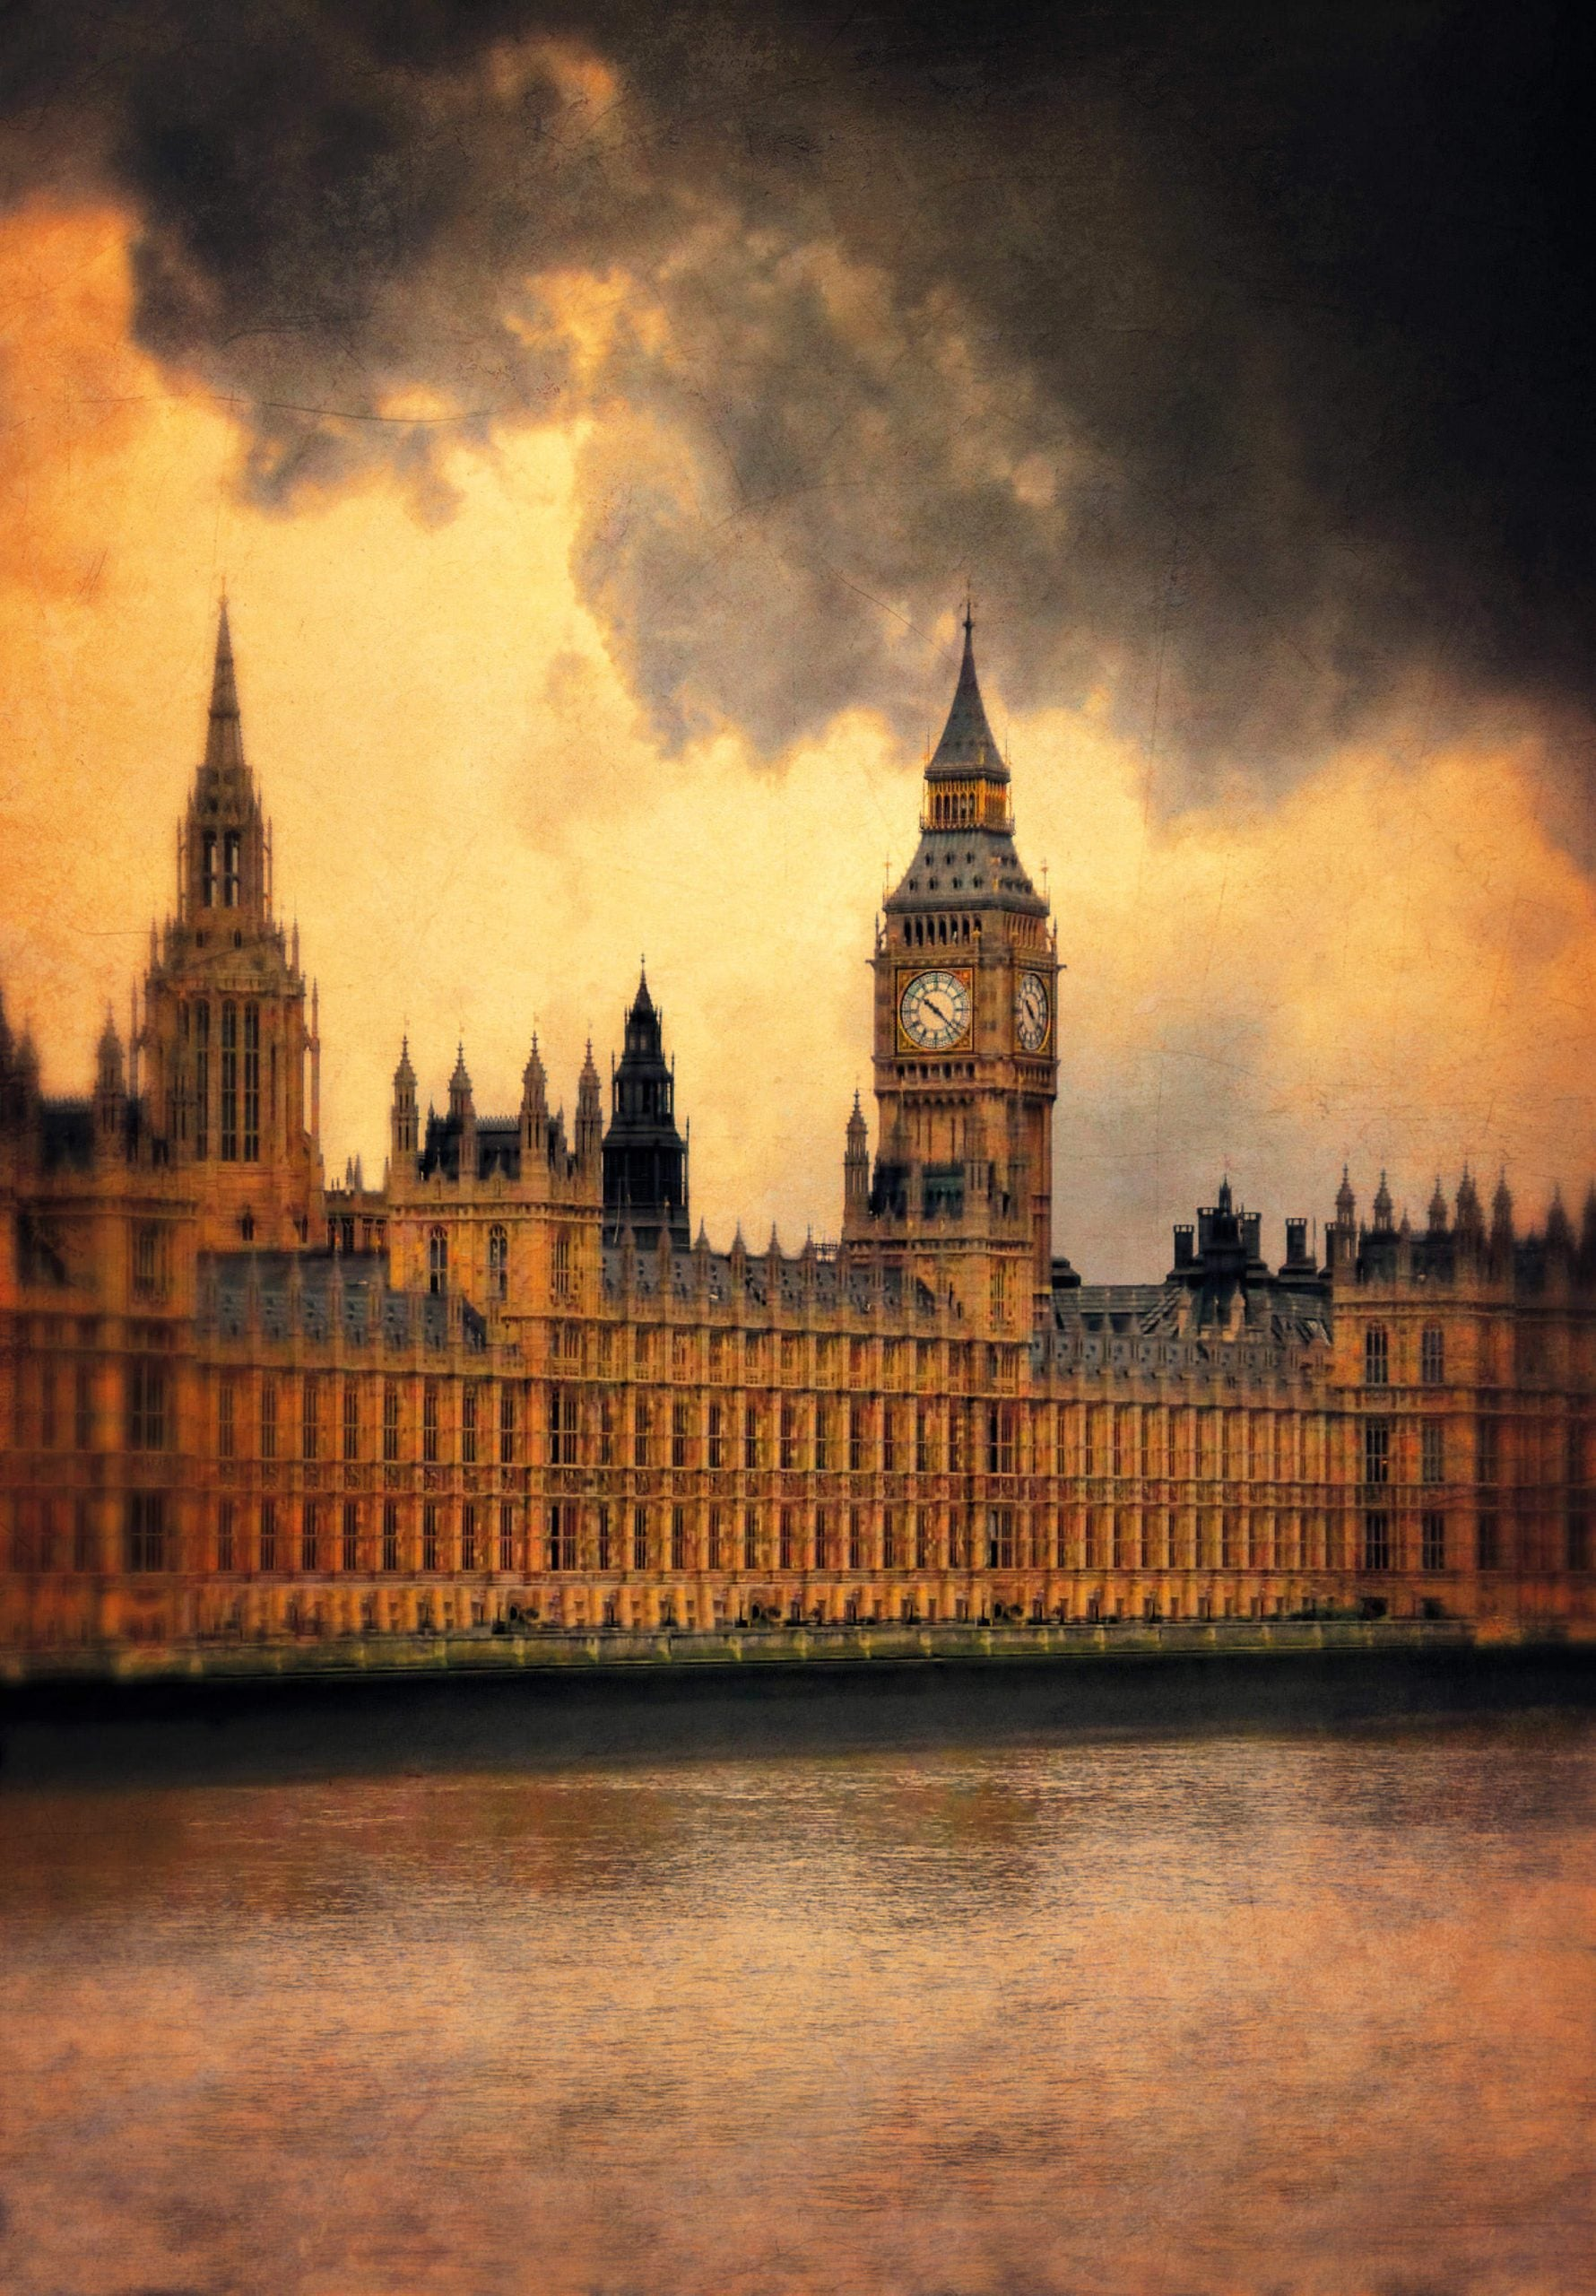 The Houses of Parliament are falling down